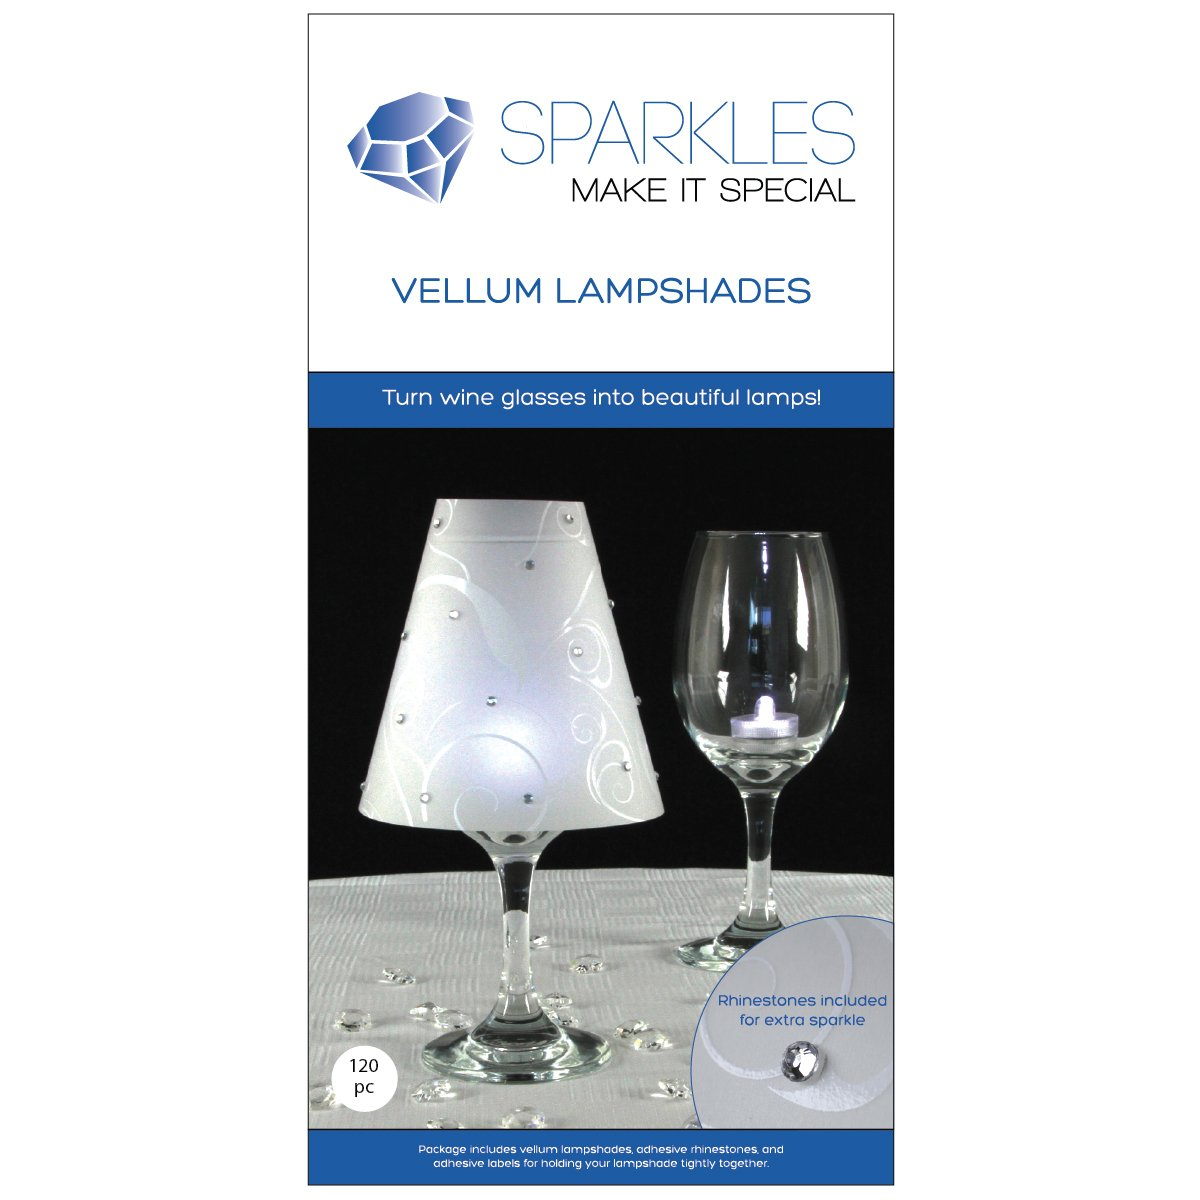 Sparkles Make It Special 120 pc Wine Glass Lamp Shades with Rhinestones - Wedding Party Table Centerpiece Decoration - White Vellum Swirl Print by Sparkles Make It Special